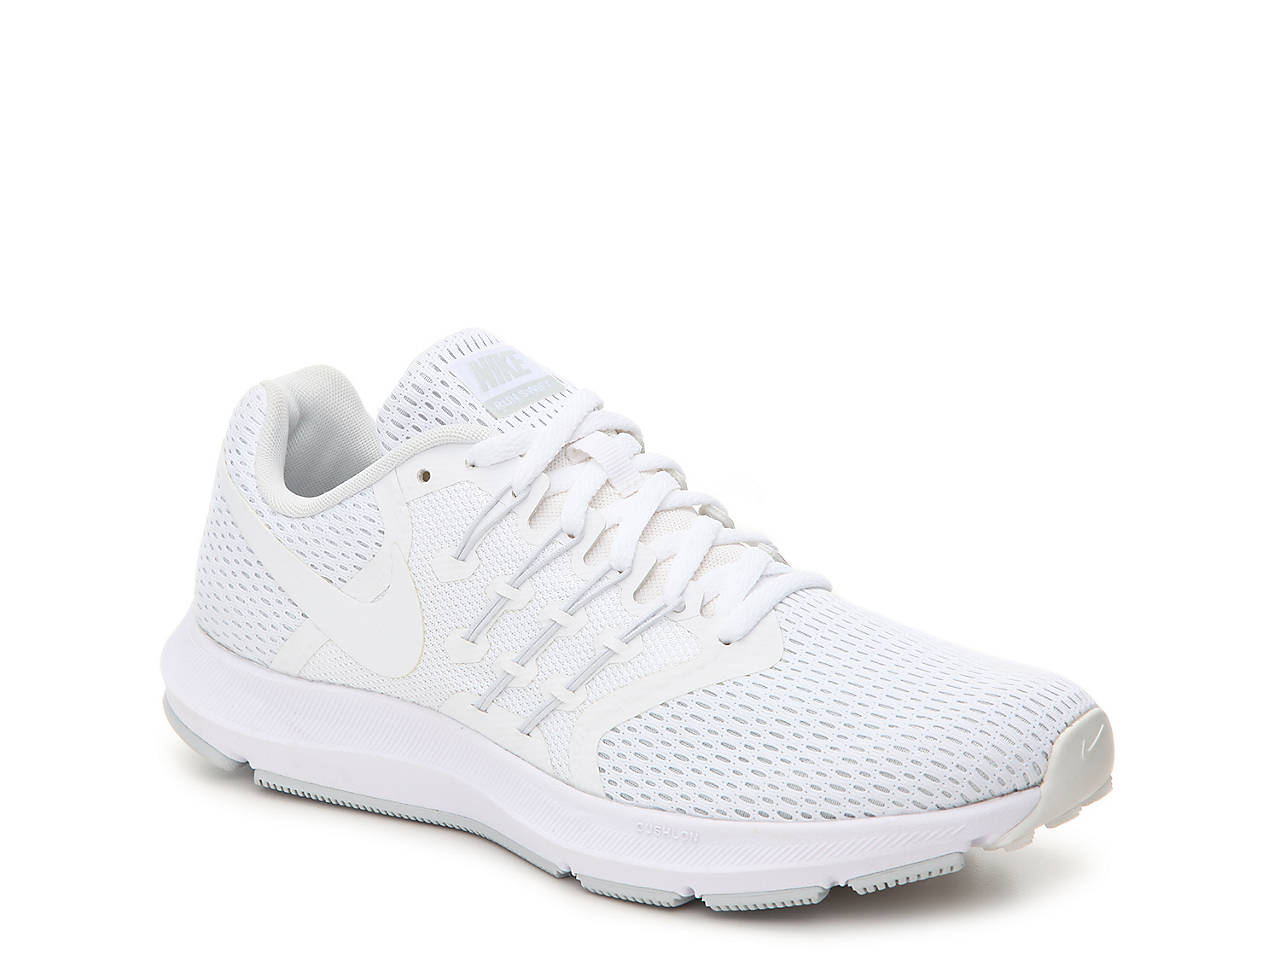 cool nike women's shoes